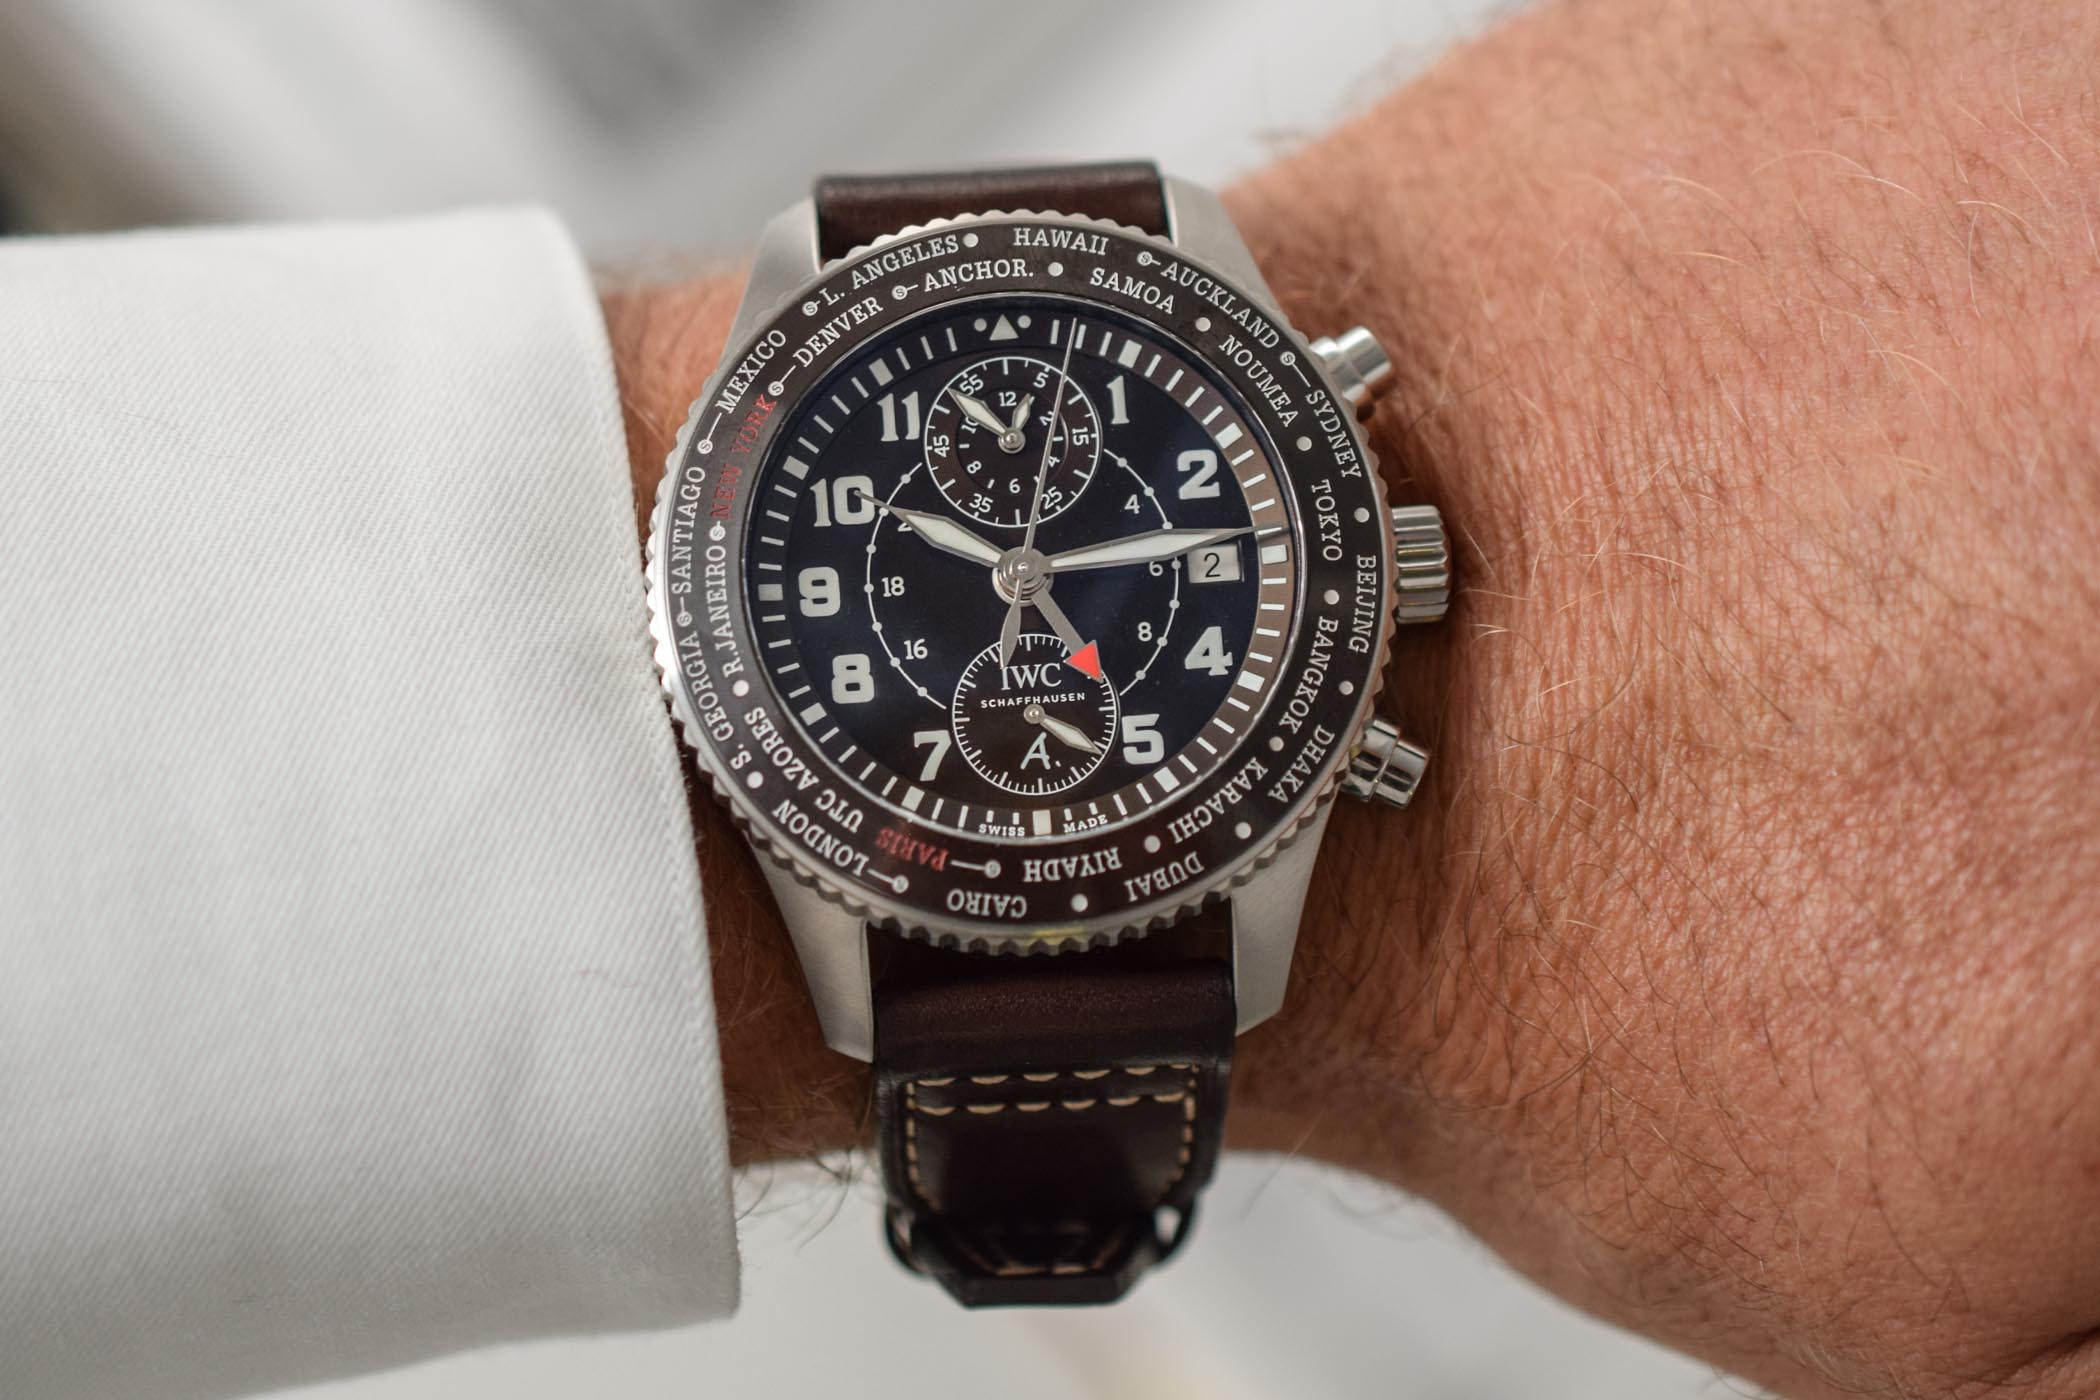 IWC Pilot's Watch Timezoner Chronograph 80 Years Flight To New York Saint Exupery - IW395003